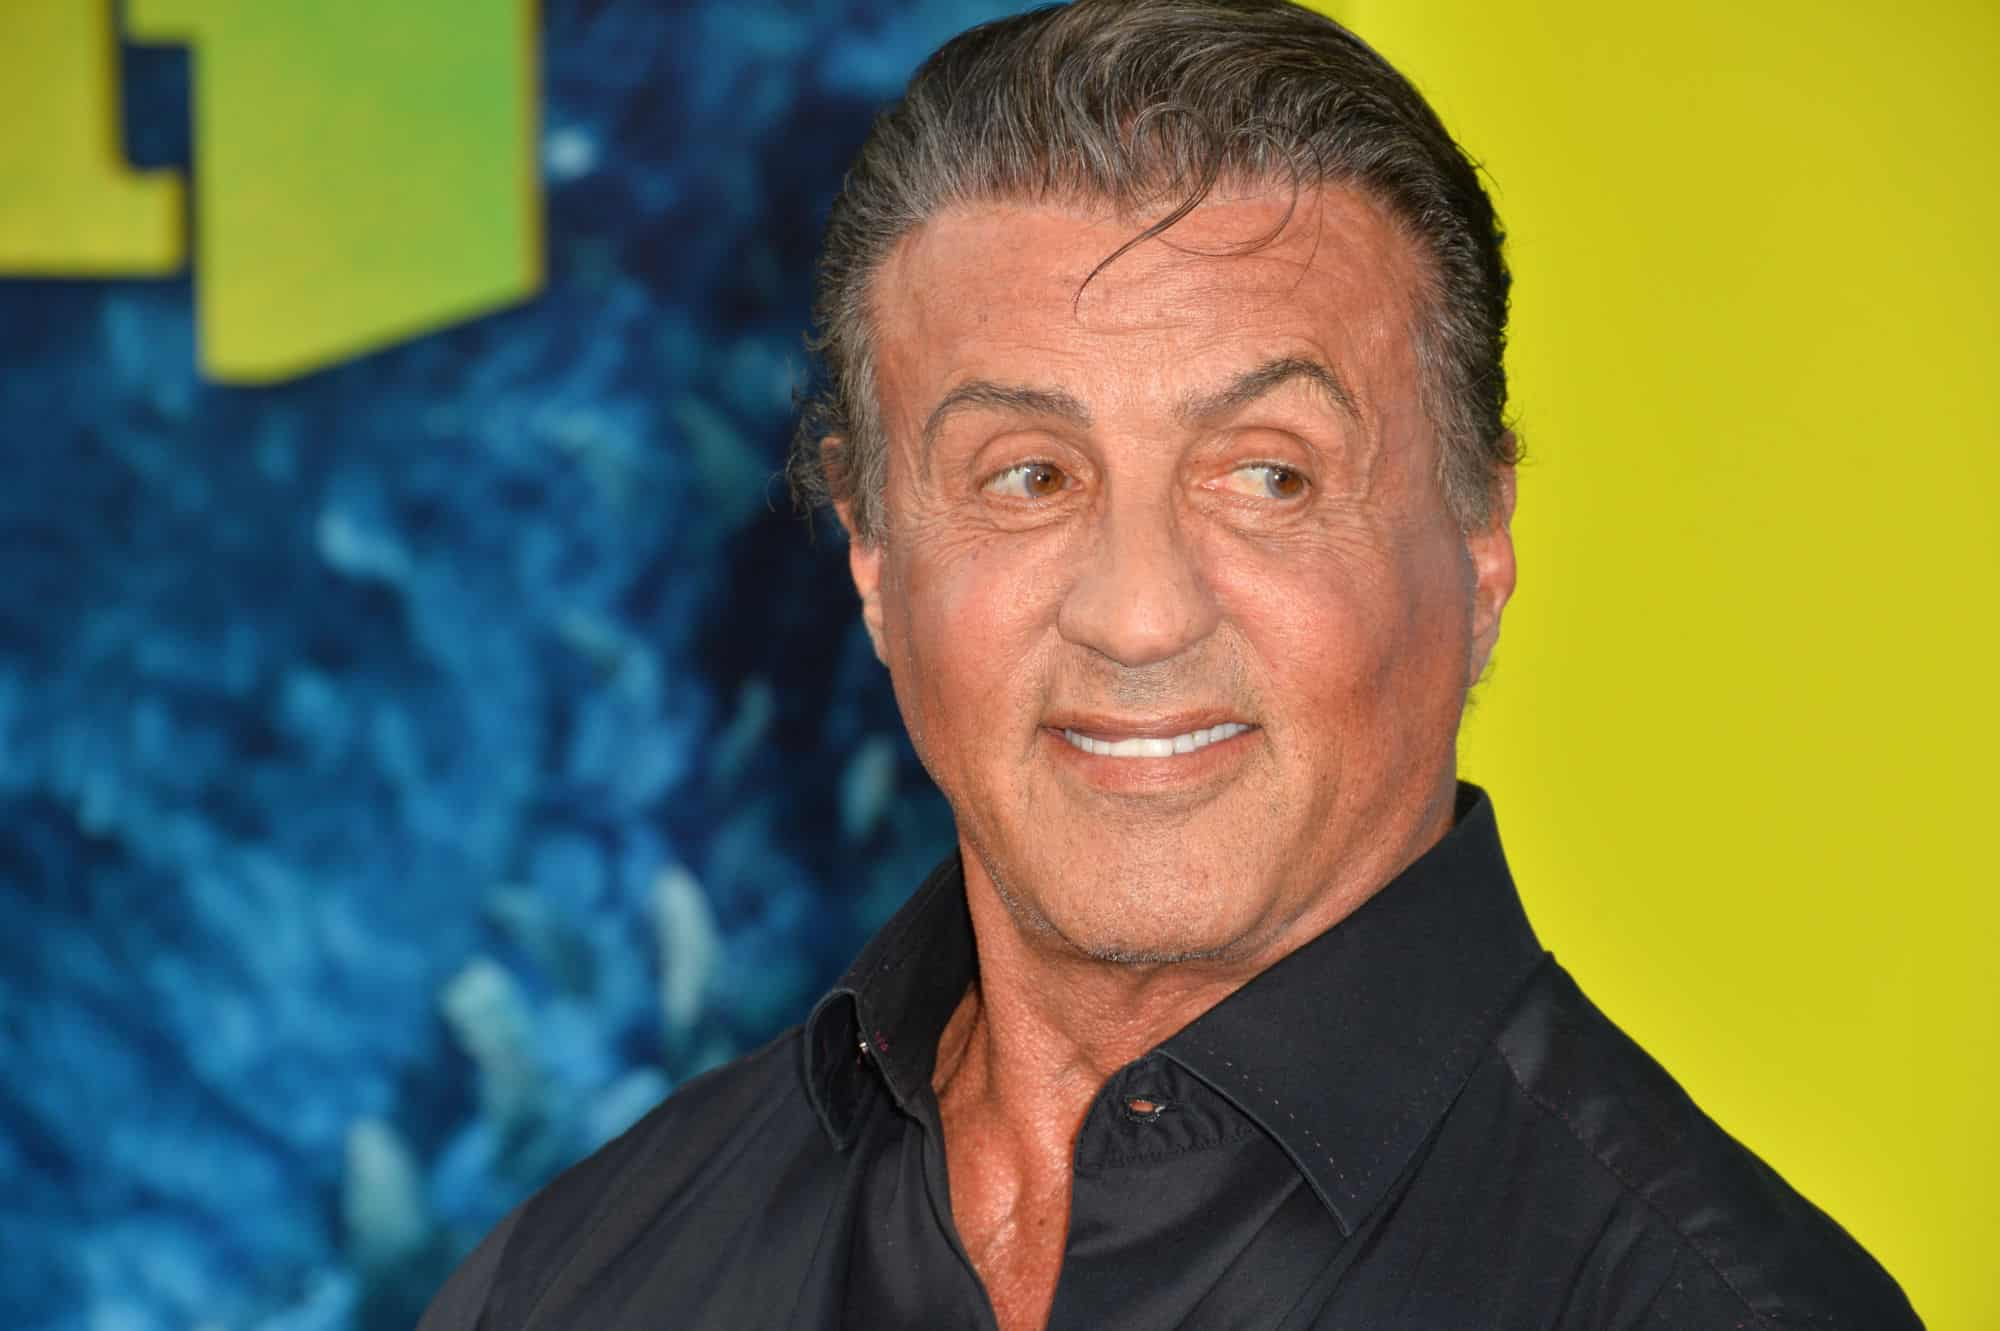 What Does Sylvester Stallone Have to do With Edgar Allen Poe?